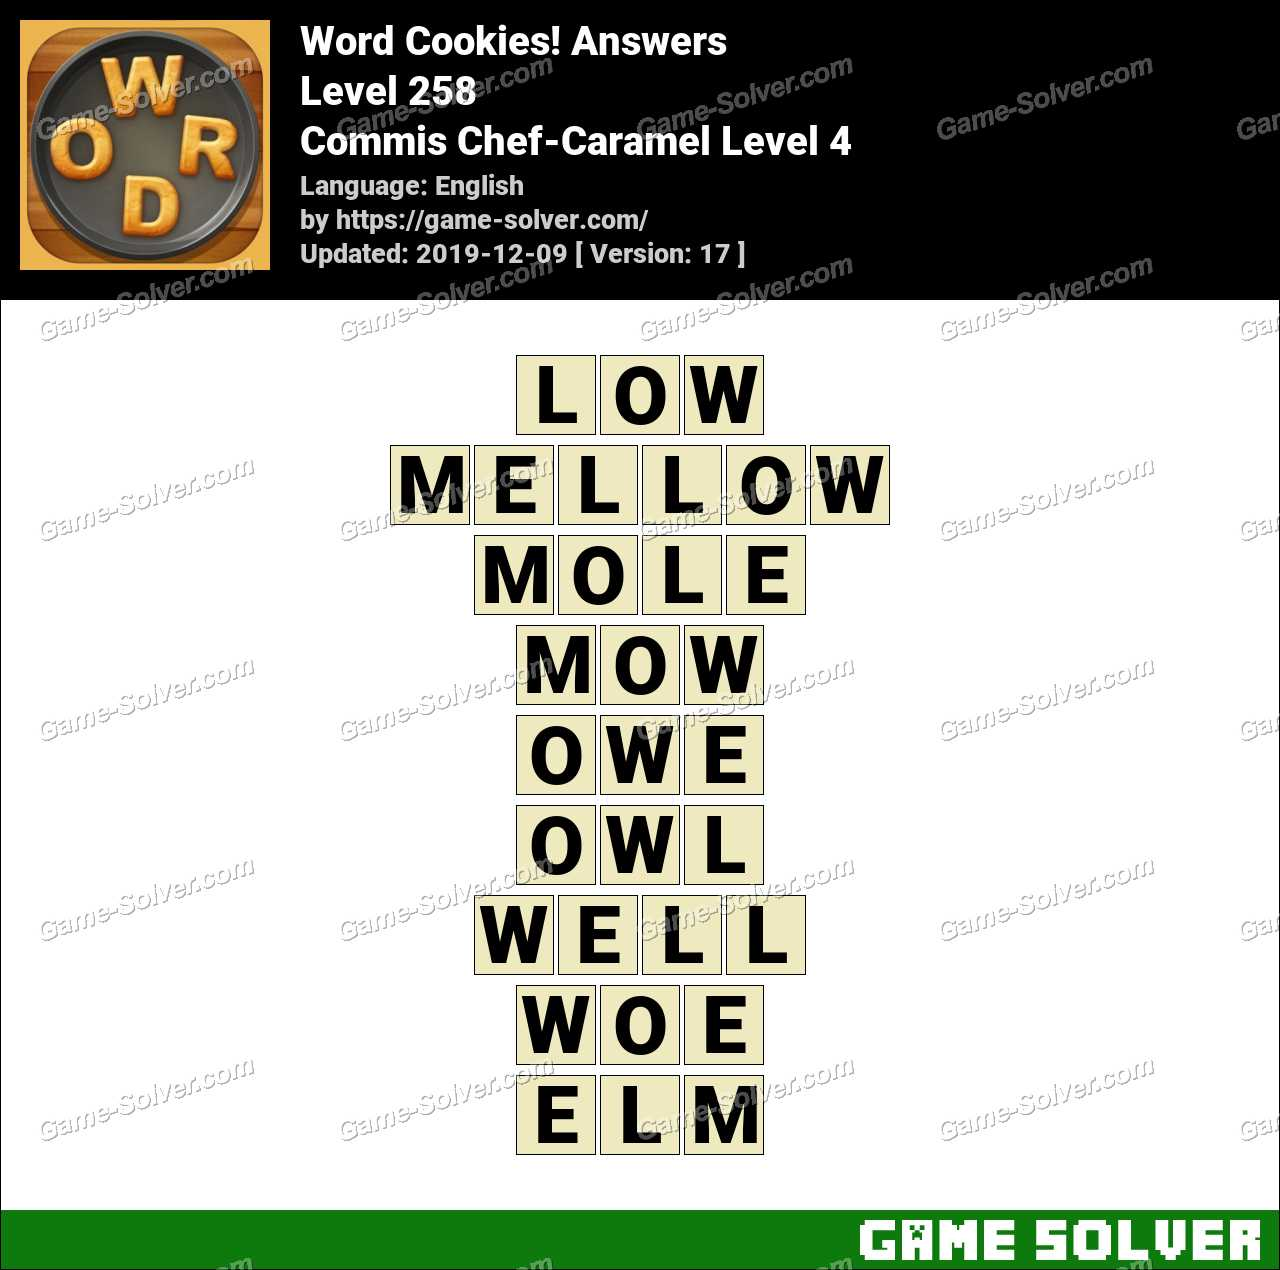 Word Cookies Commis Chef-Caramel Level 4 Answers